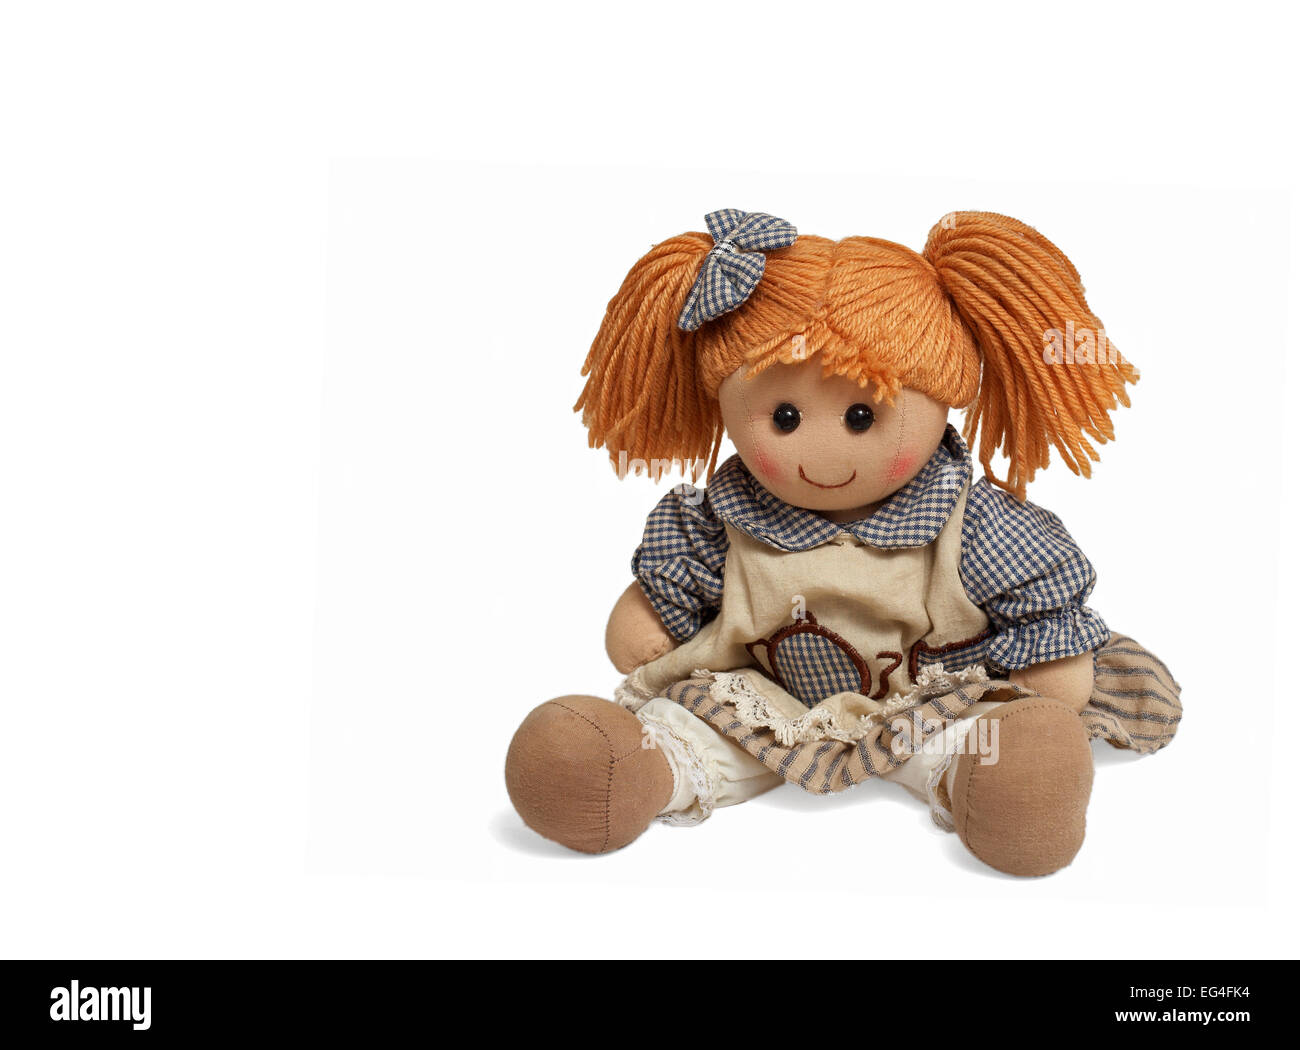 Lovely funny doll - Stock Image